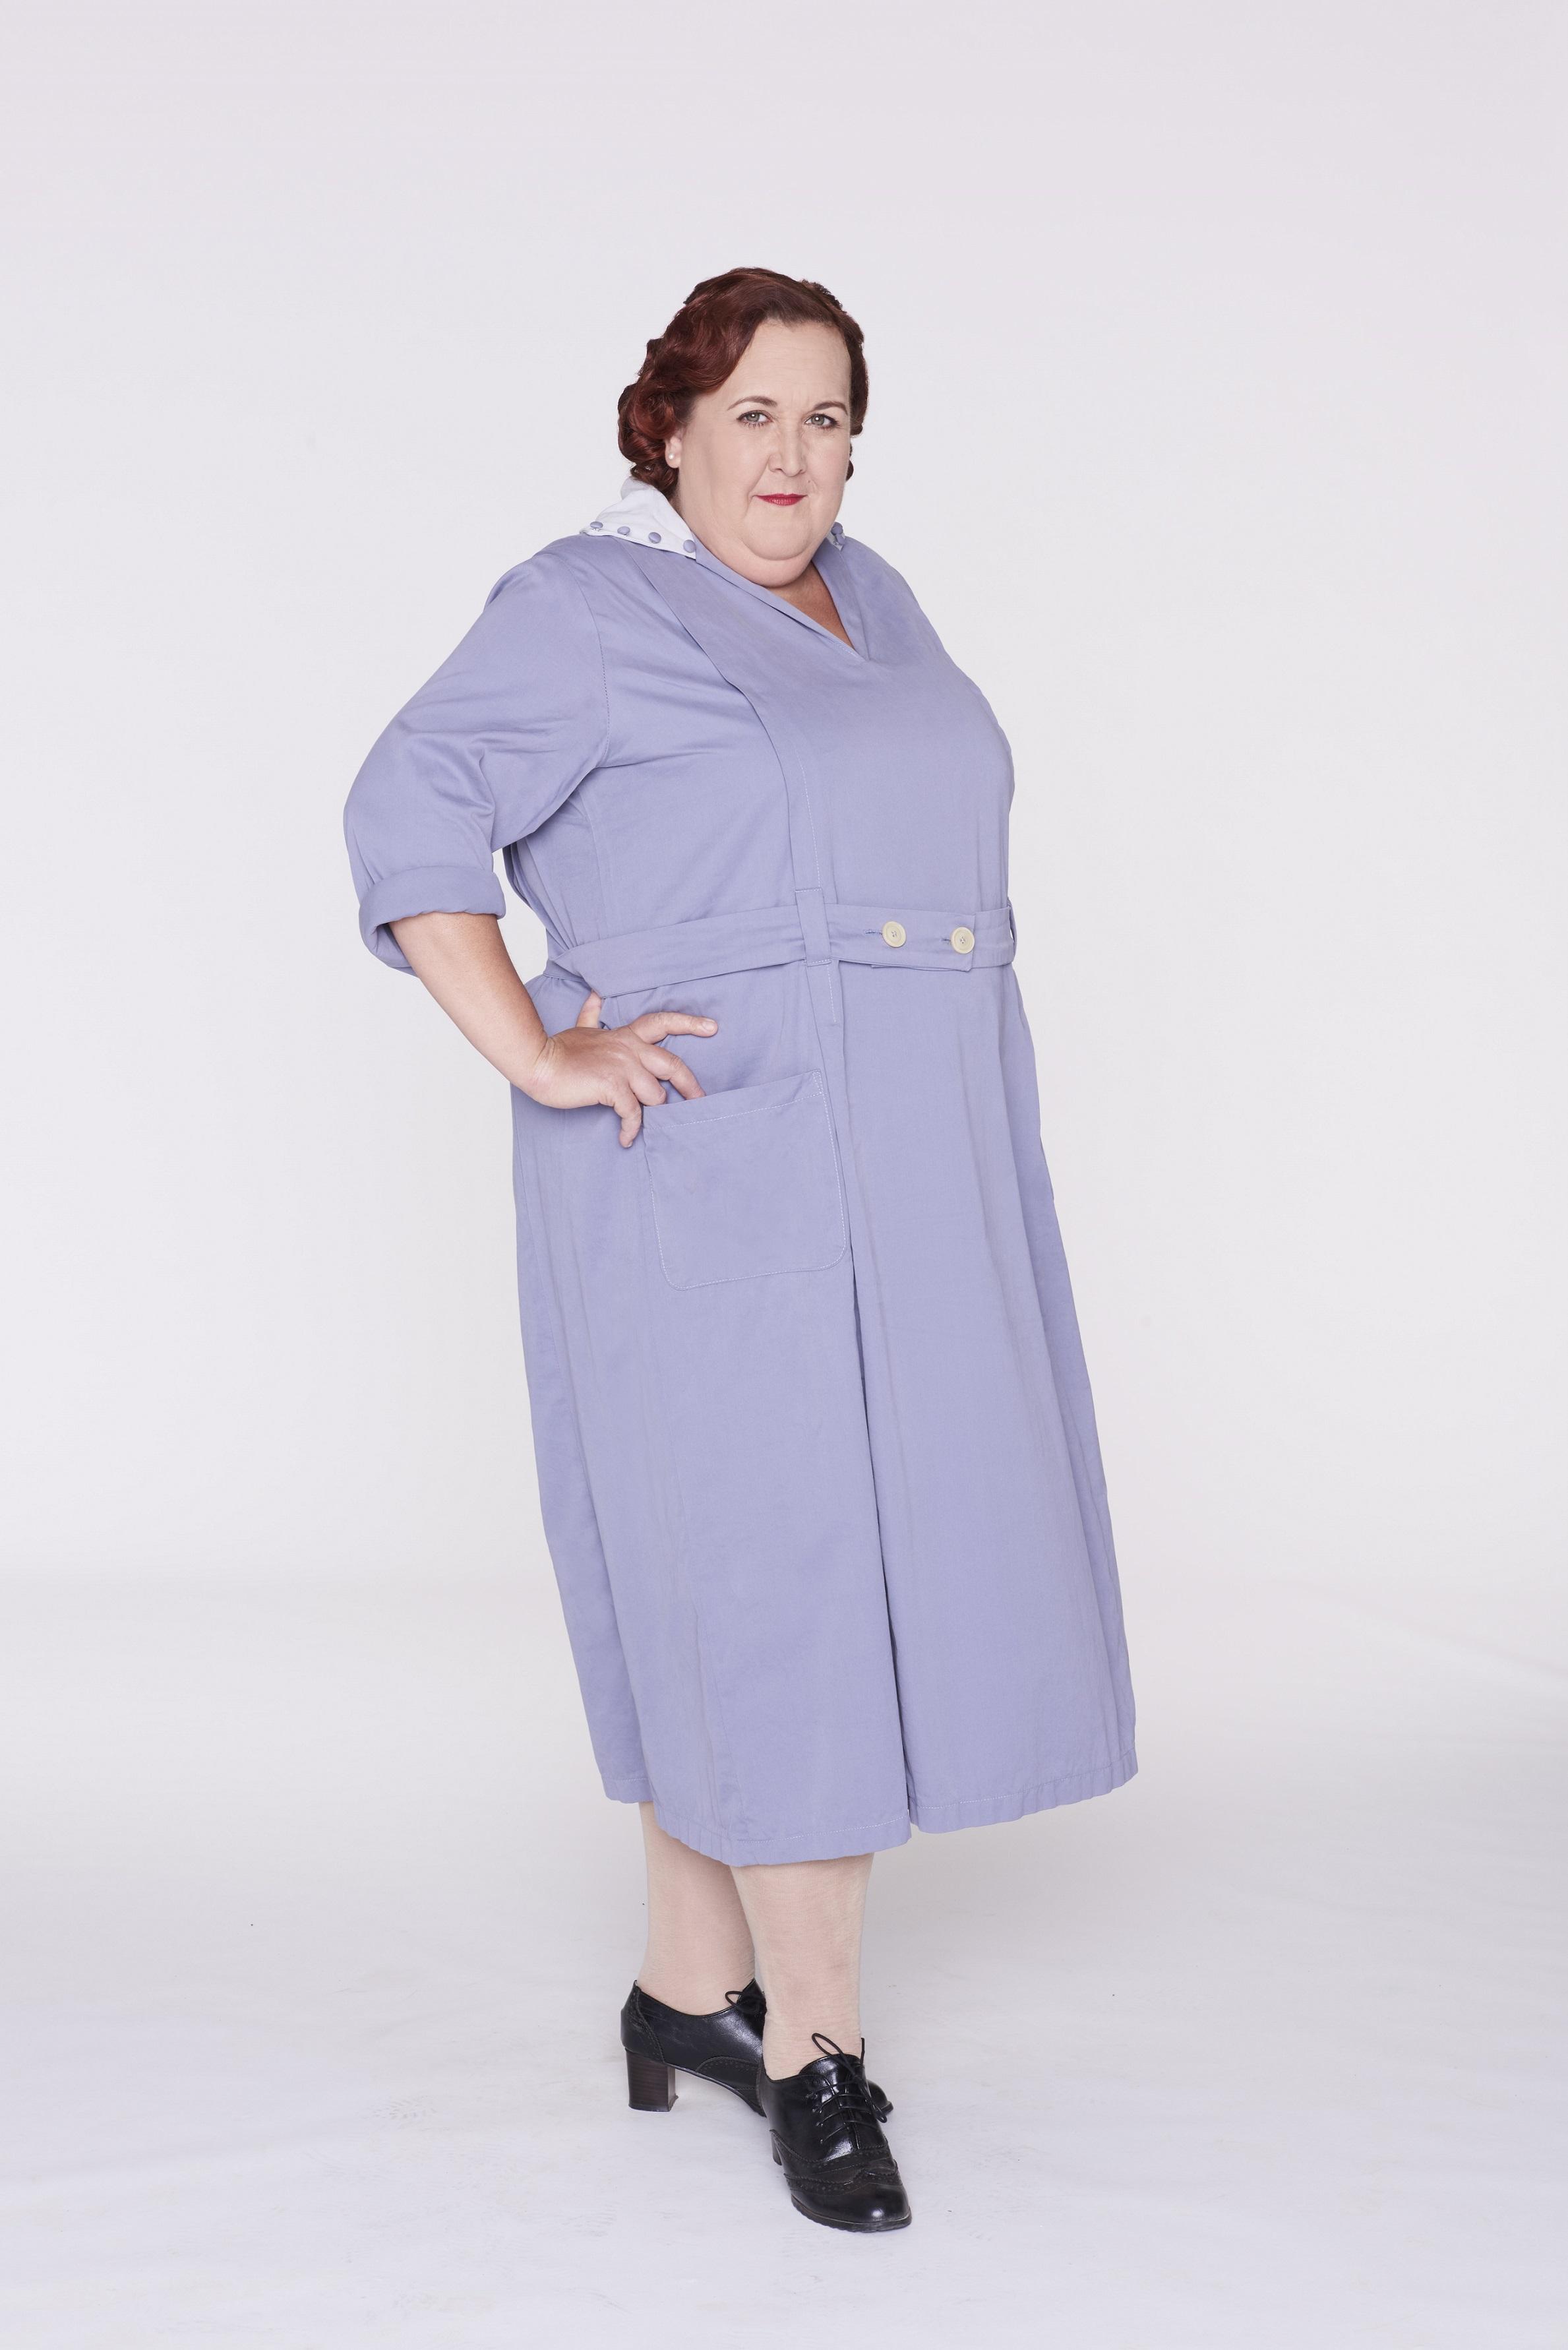 Sharron Matthews as Flo